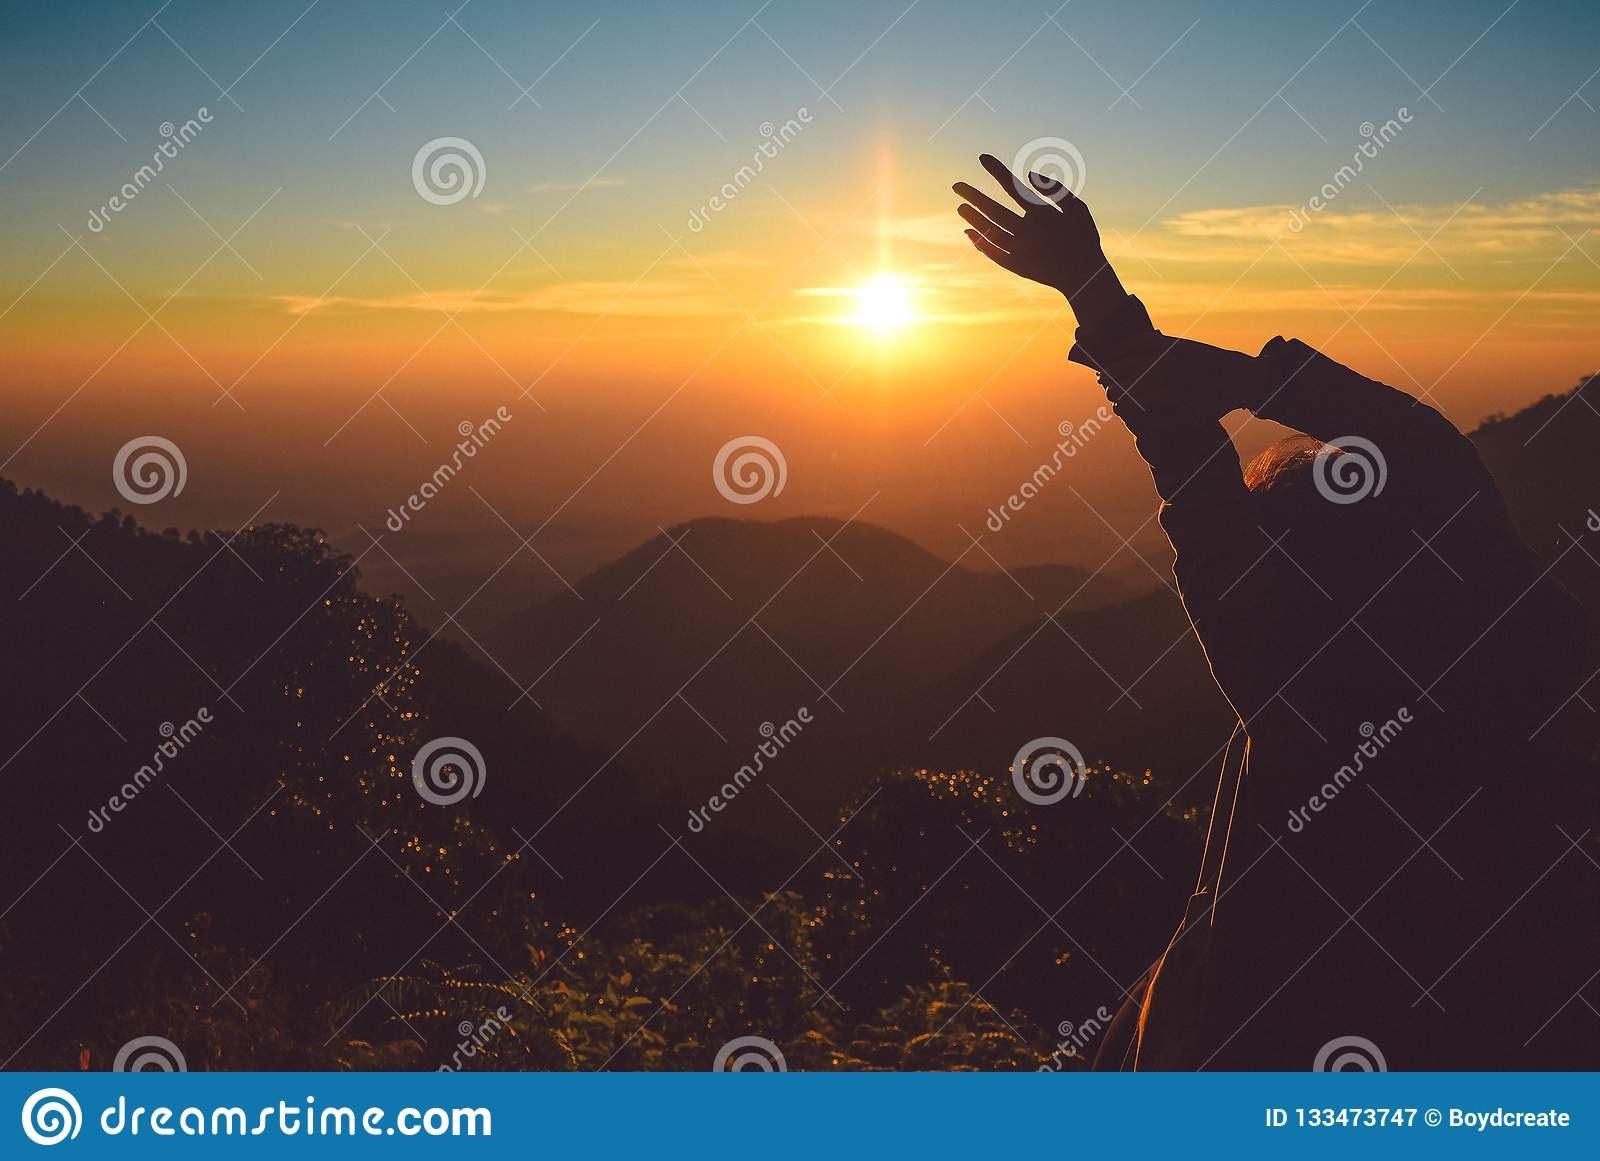 Silhouette Woman Rising Hands On Mountain In Morning With